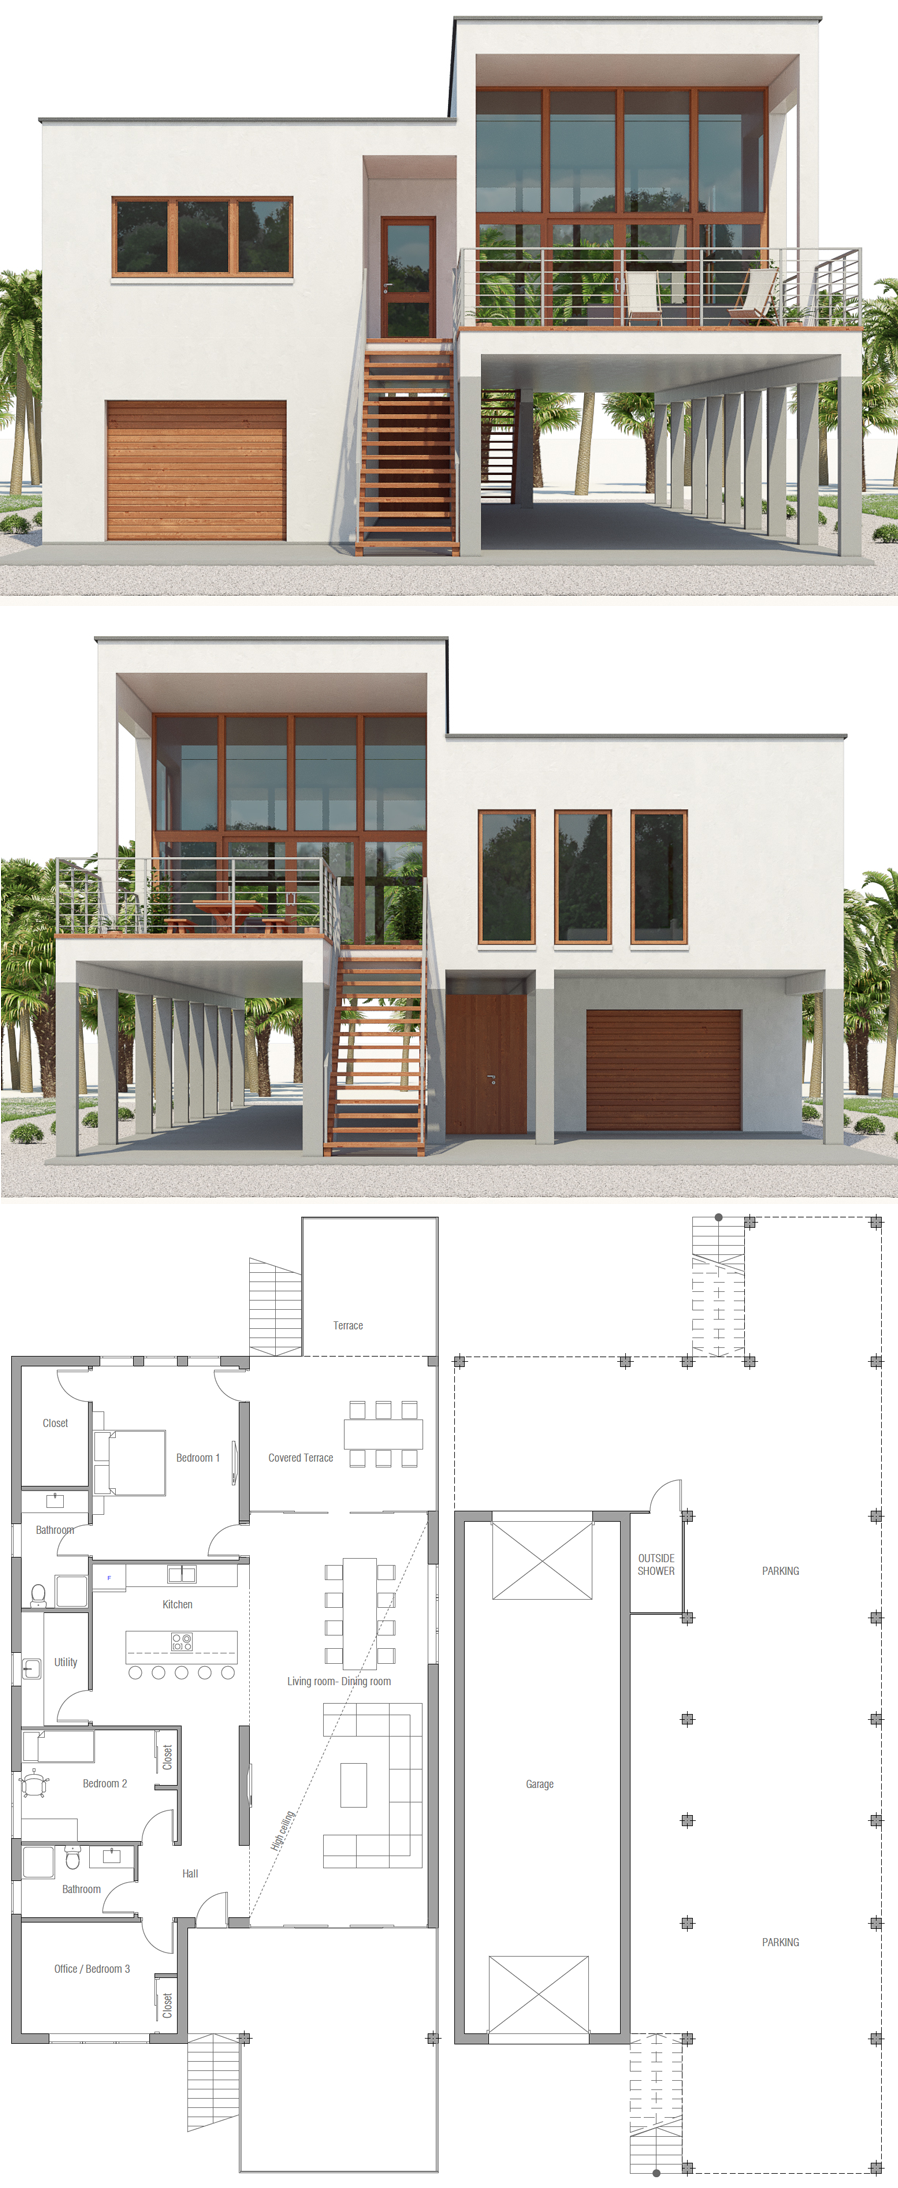 Modern Beach House Plans, Beach Home Plans beachhouse newhome floorplans architecture archdaily is part of Living room design styles -